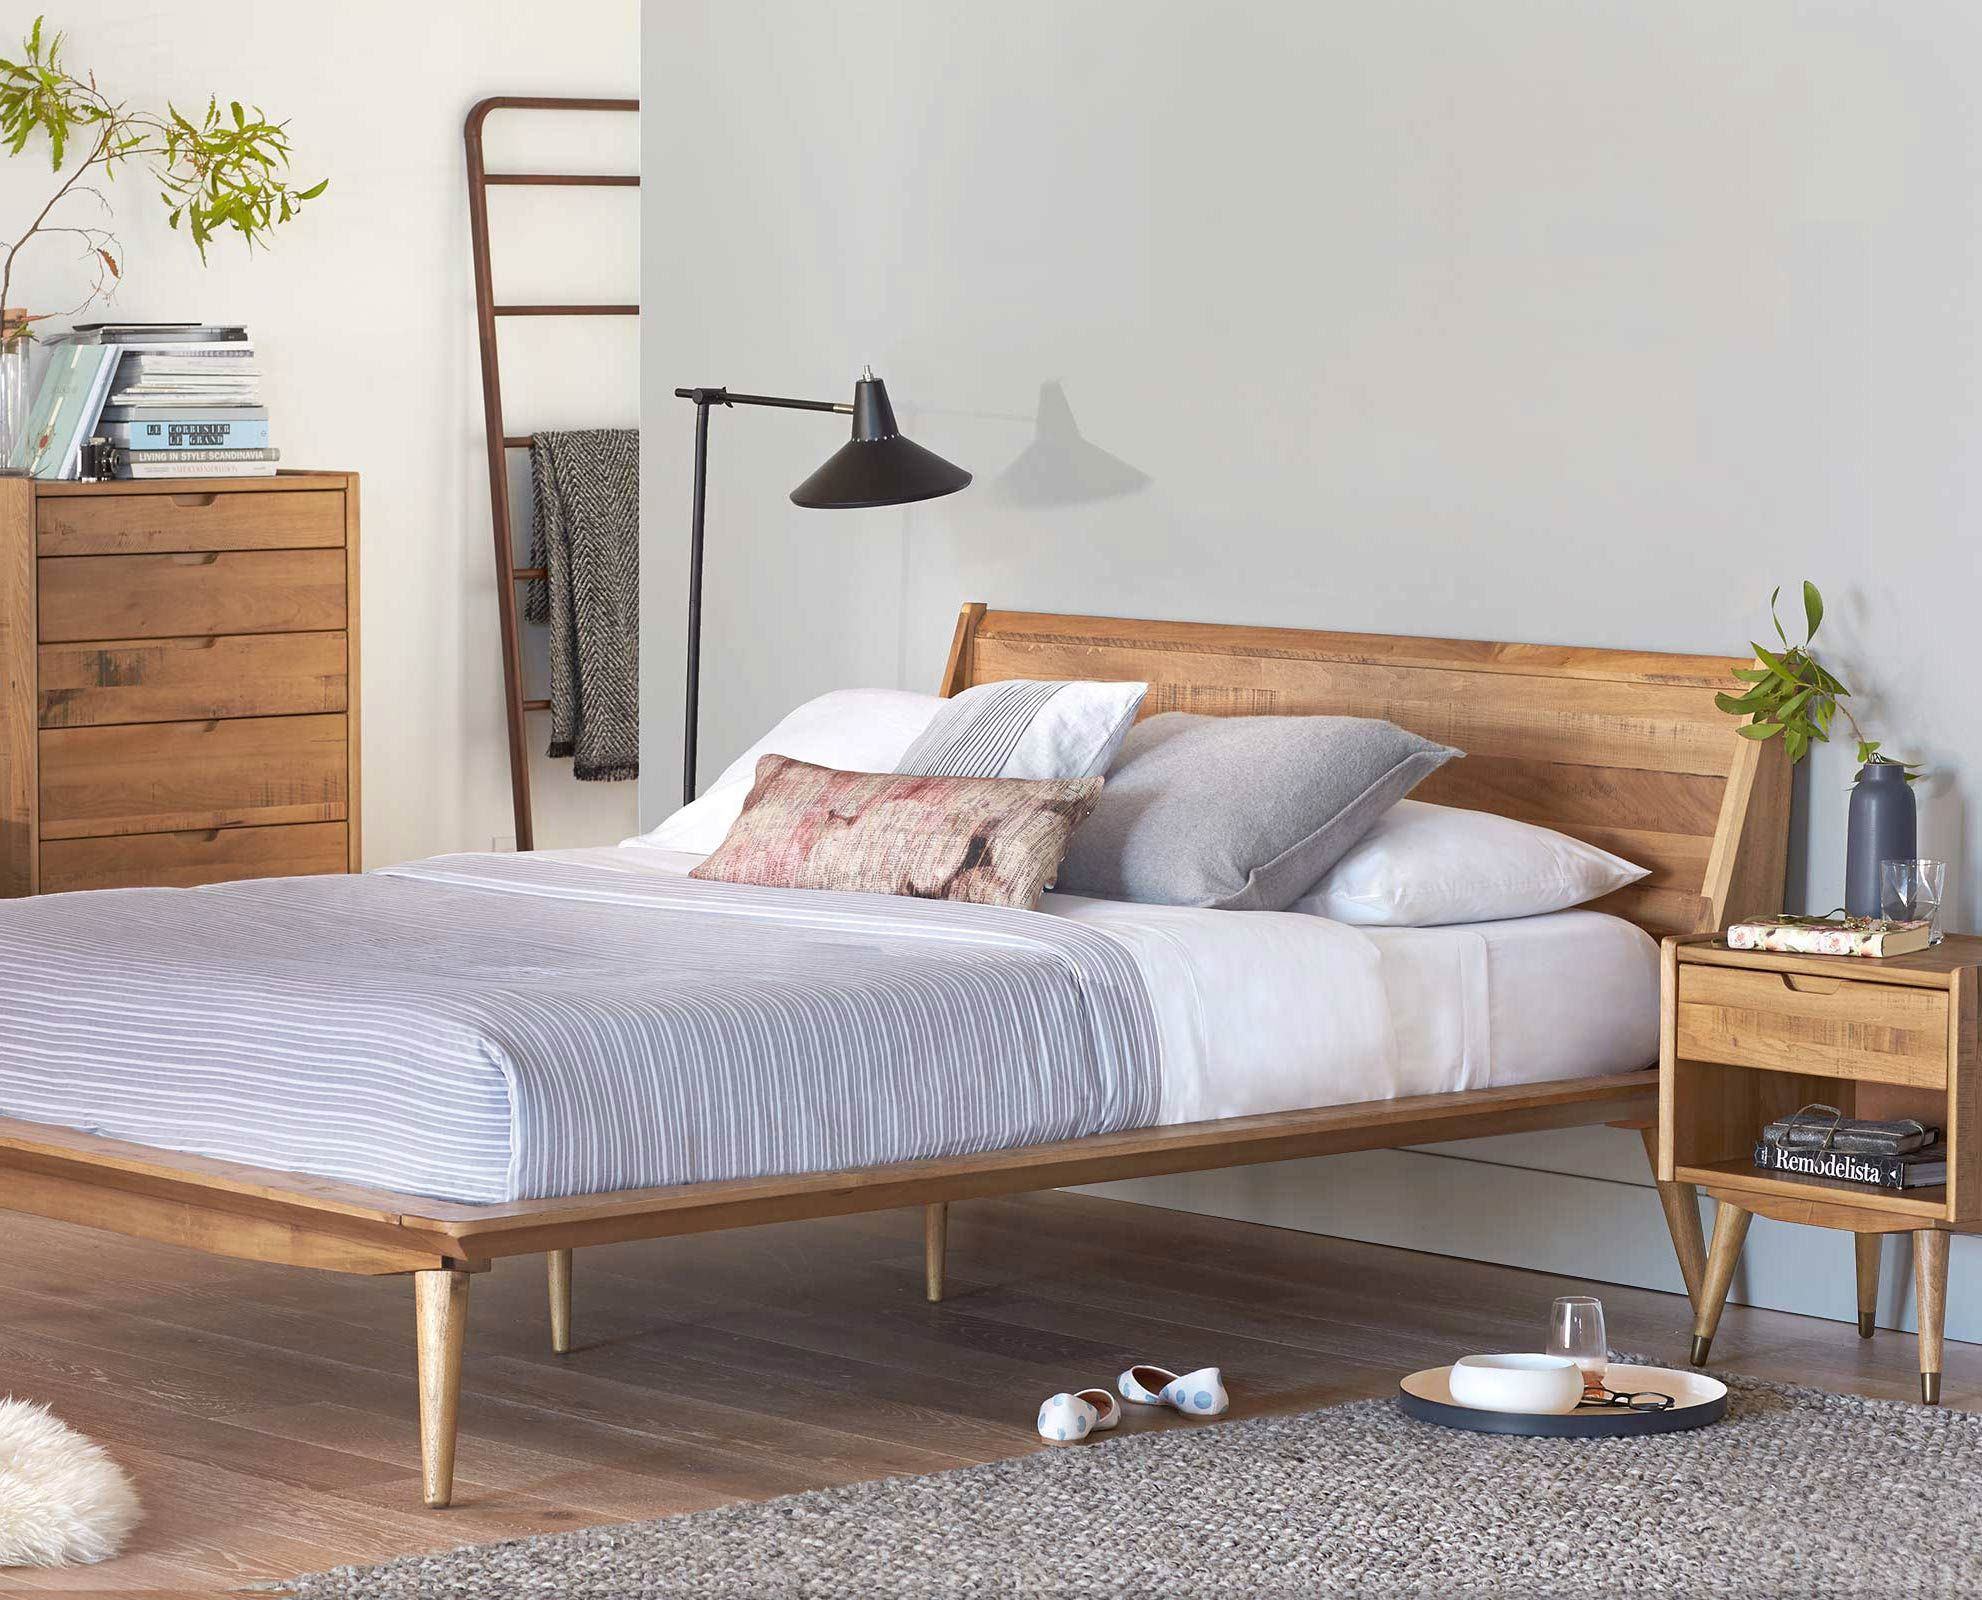 New Style Bedroom Bed Design Of Dania The Nordic Inspired Bolig Bed Is Crafted From